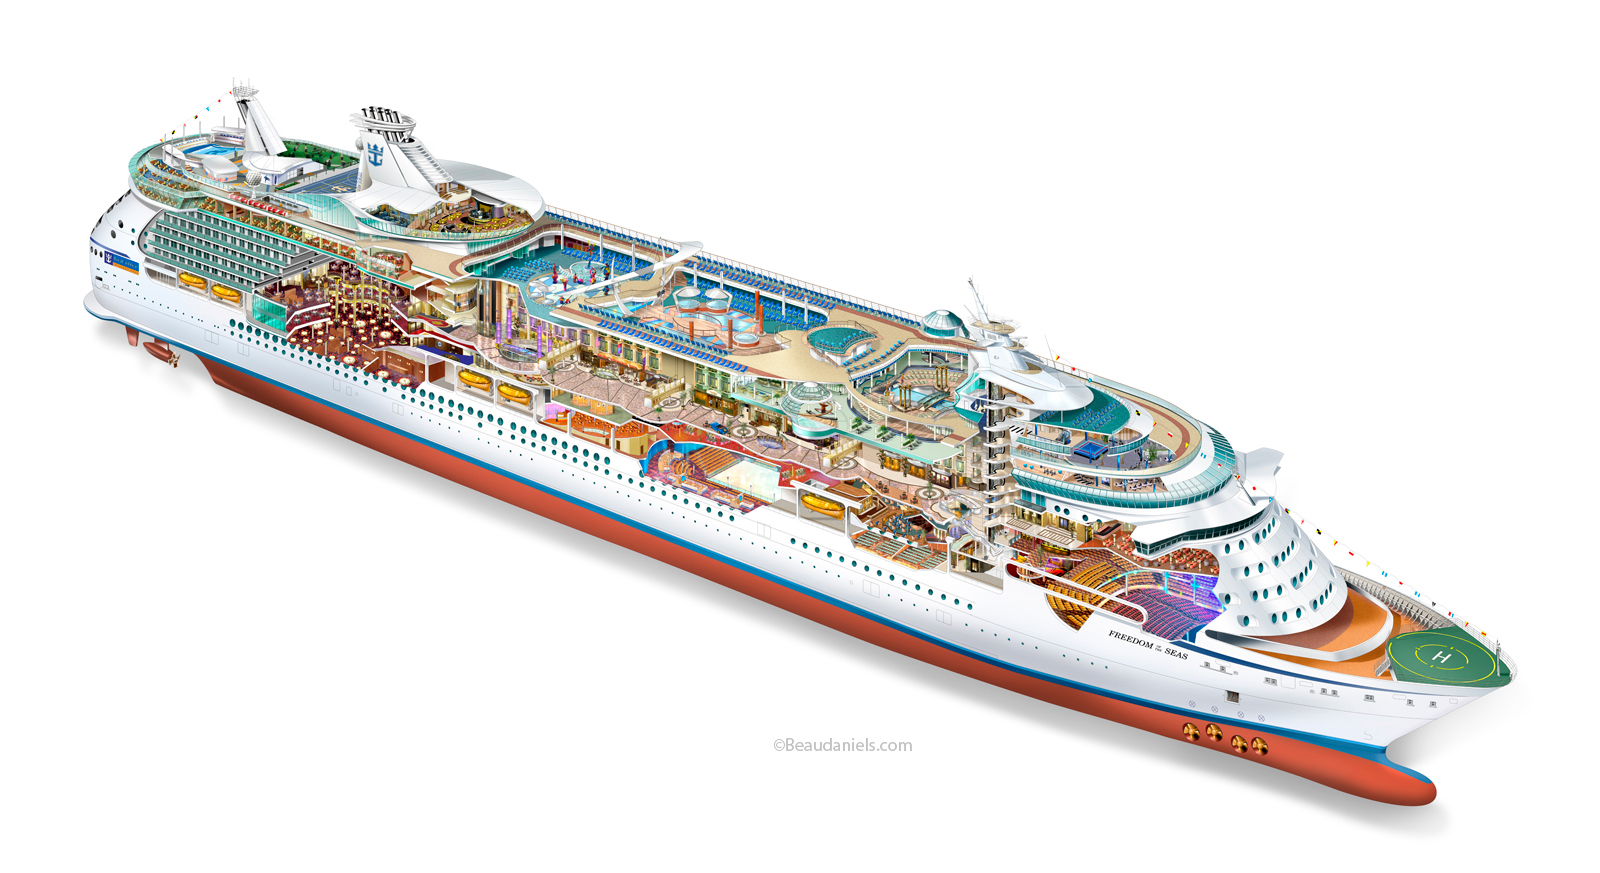 Royal Caribbean Cruise Deck Plan Awesome design kitchen New in House Designer Room